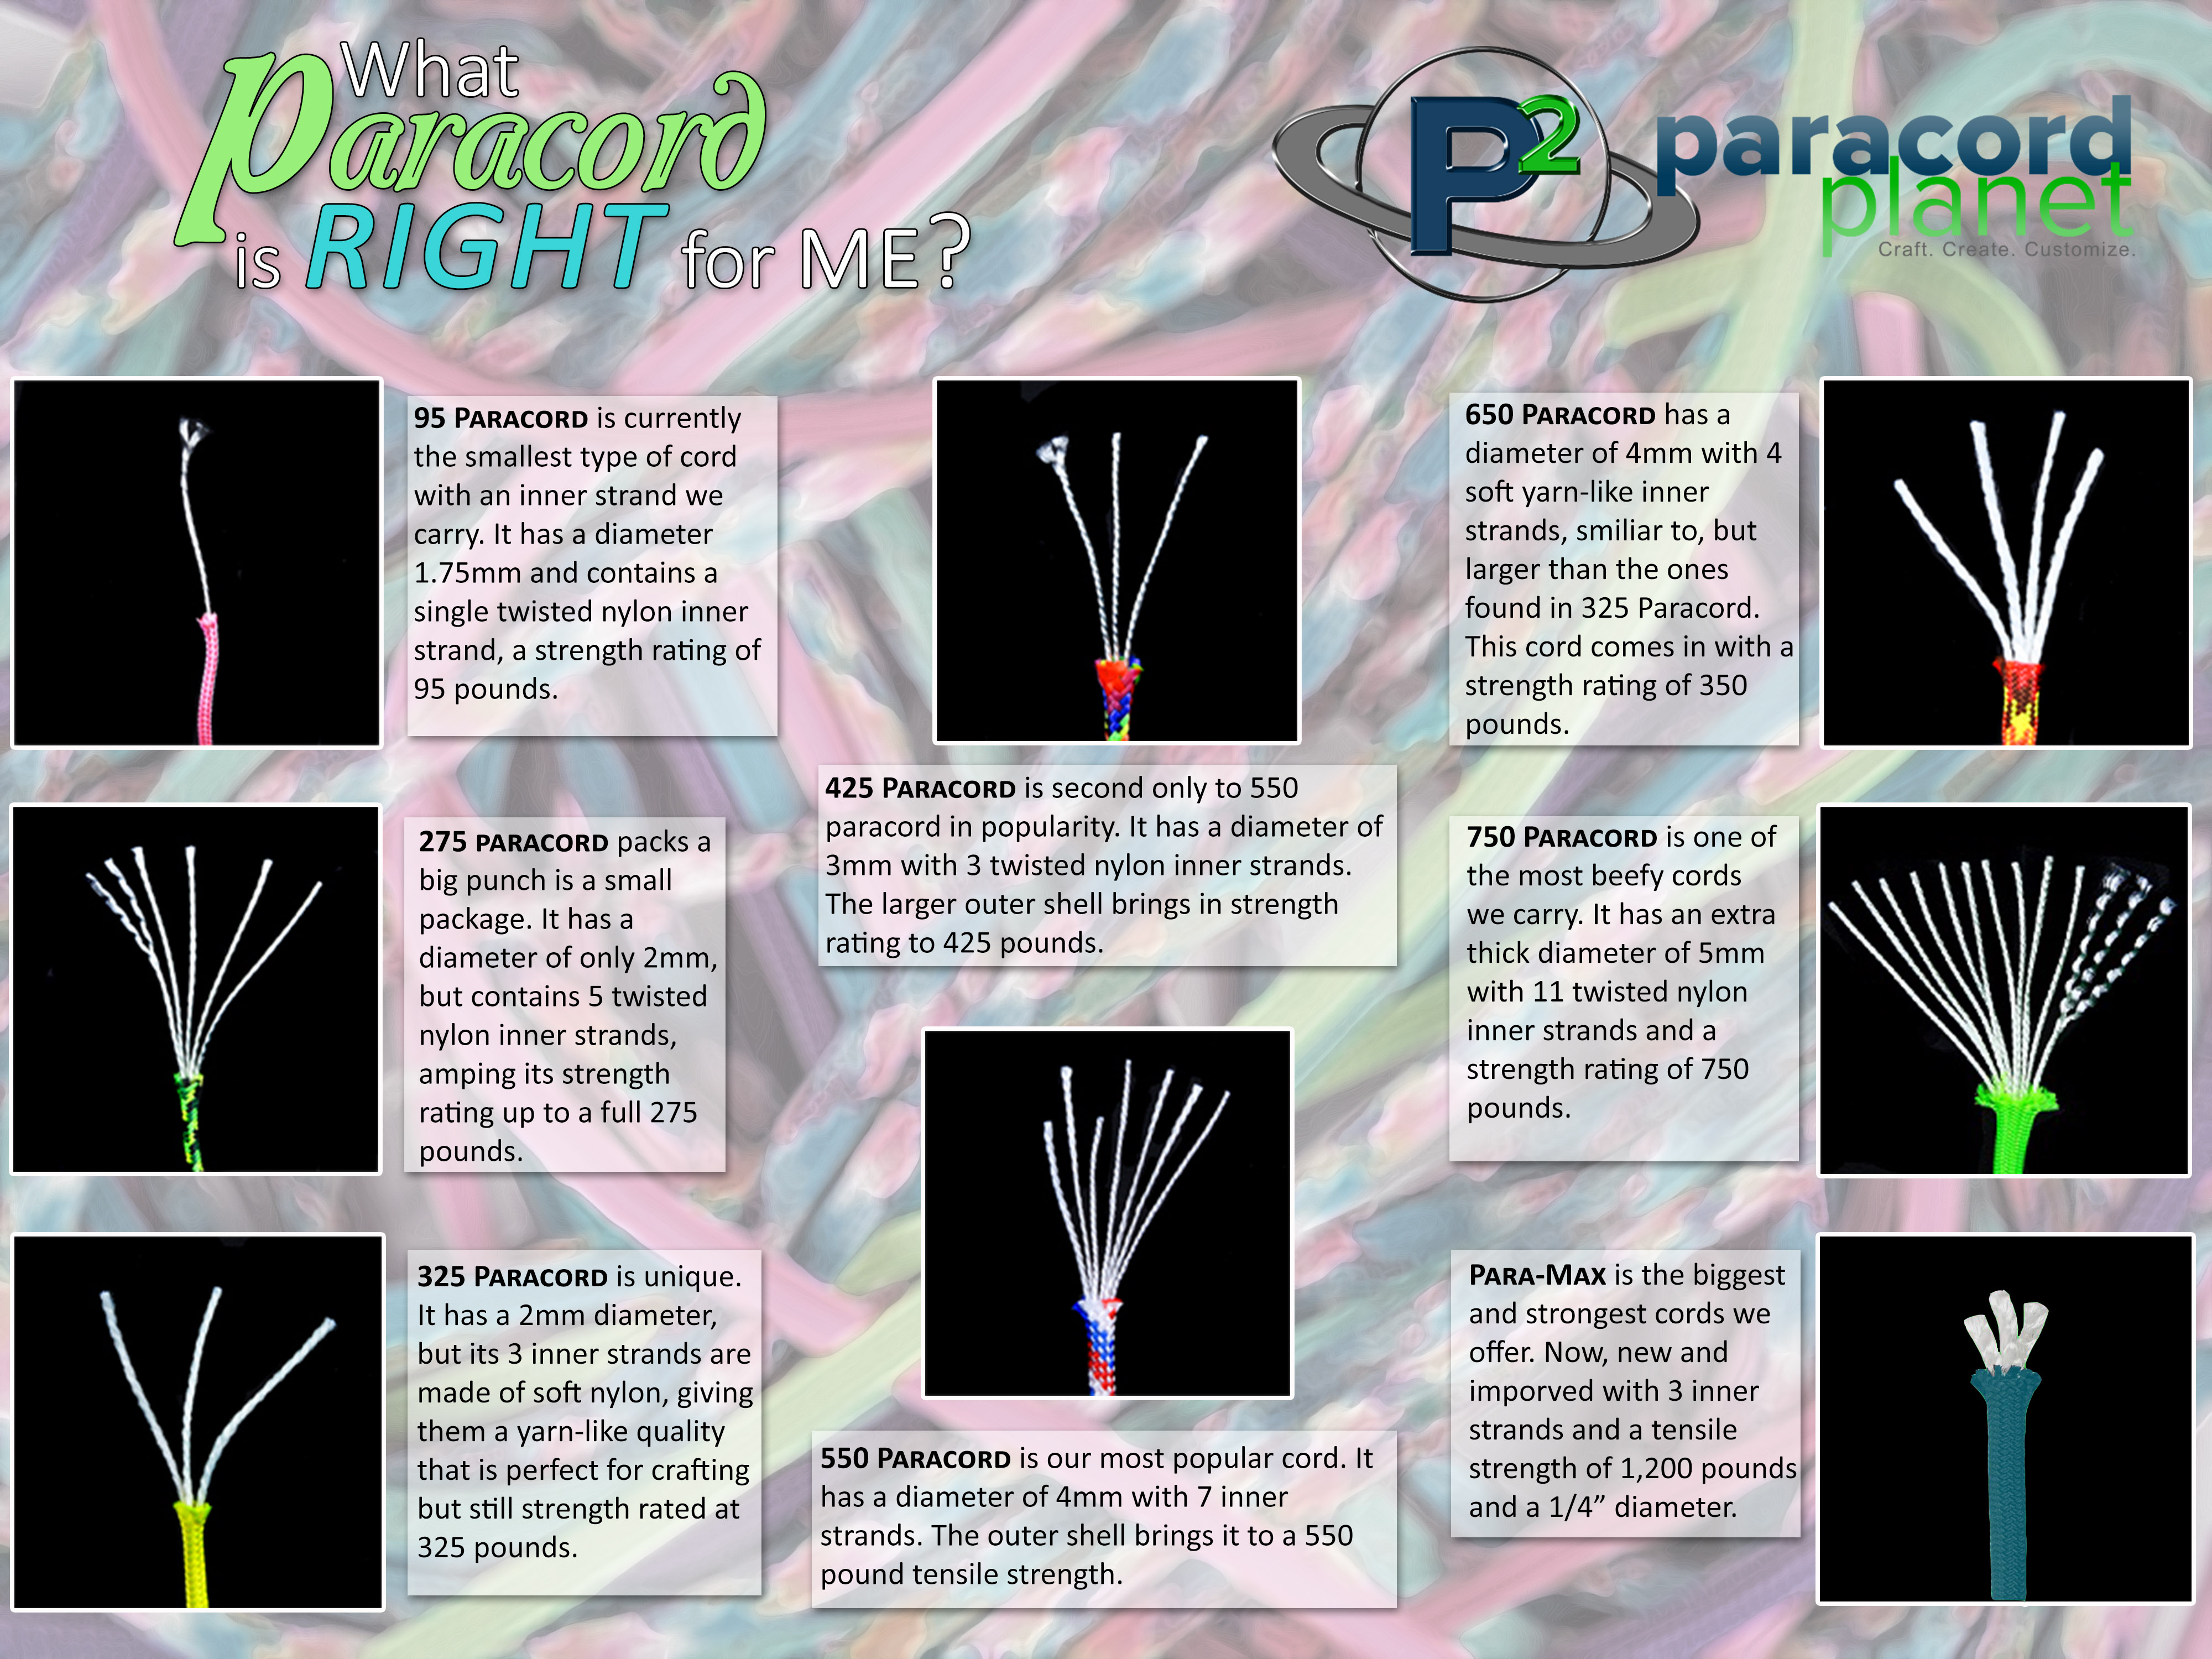 What Paracord is Right for Me